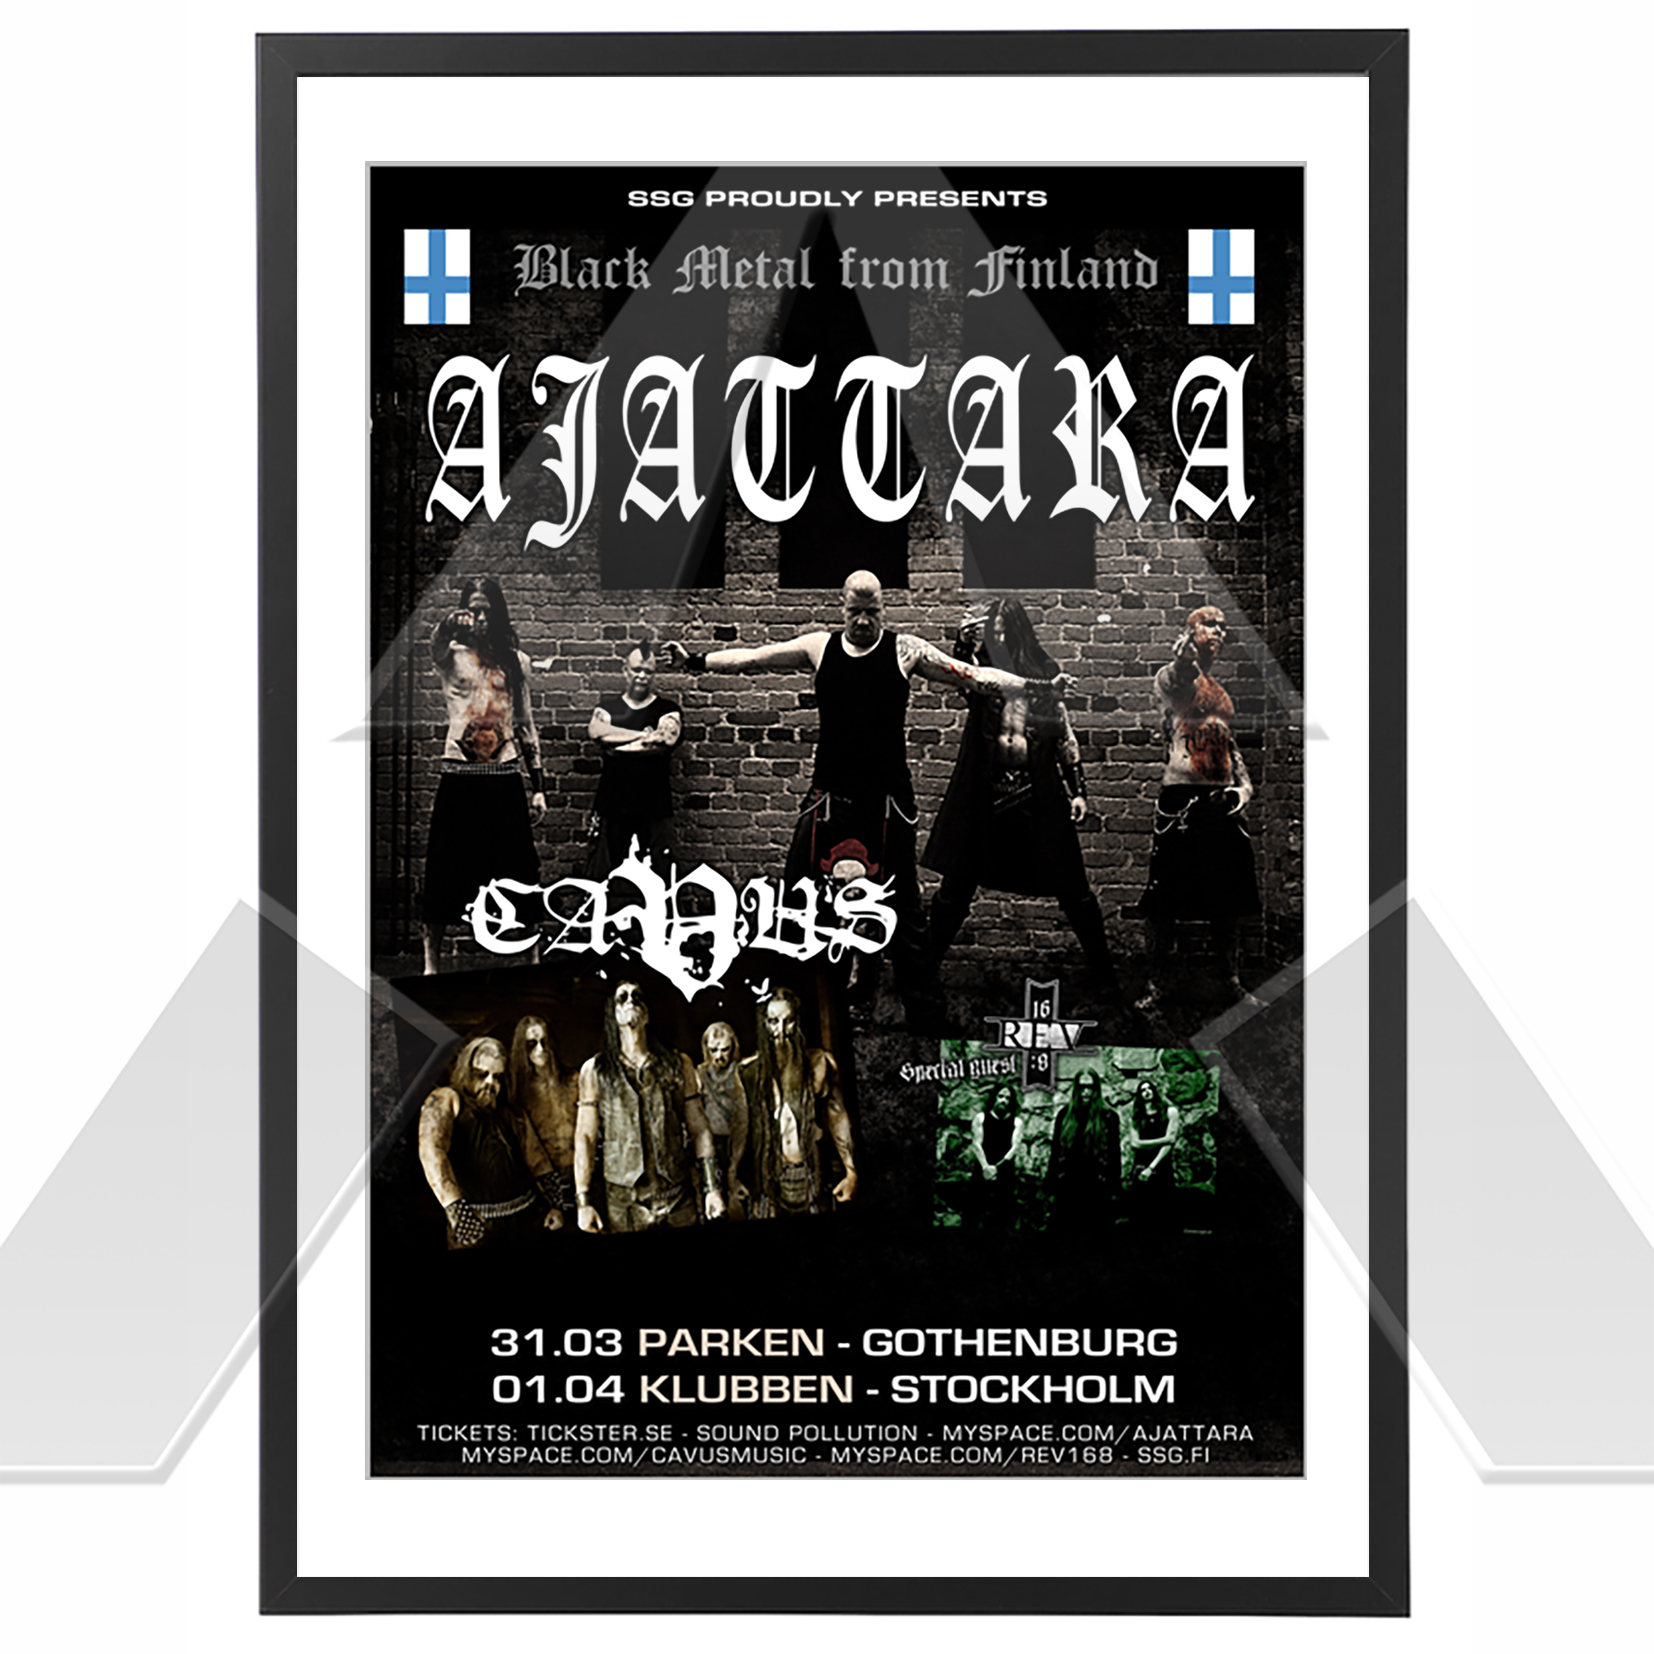 Ajattara ★ Black Metal from Finland 2010  (tour poster)